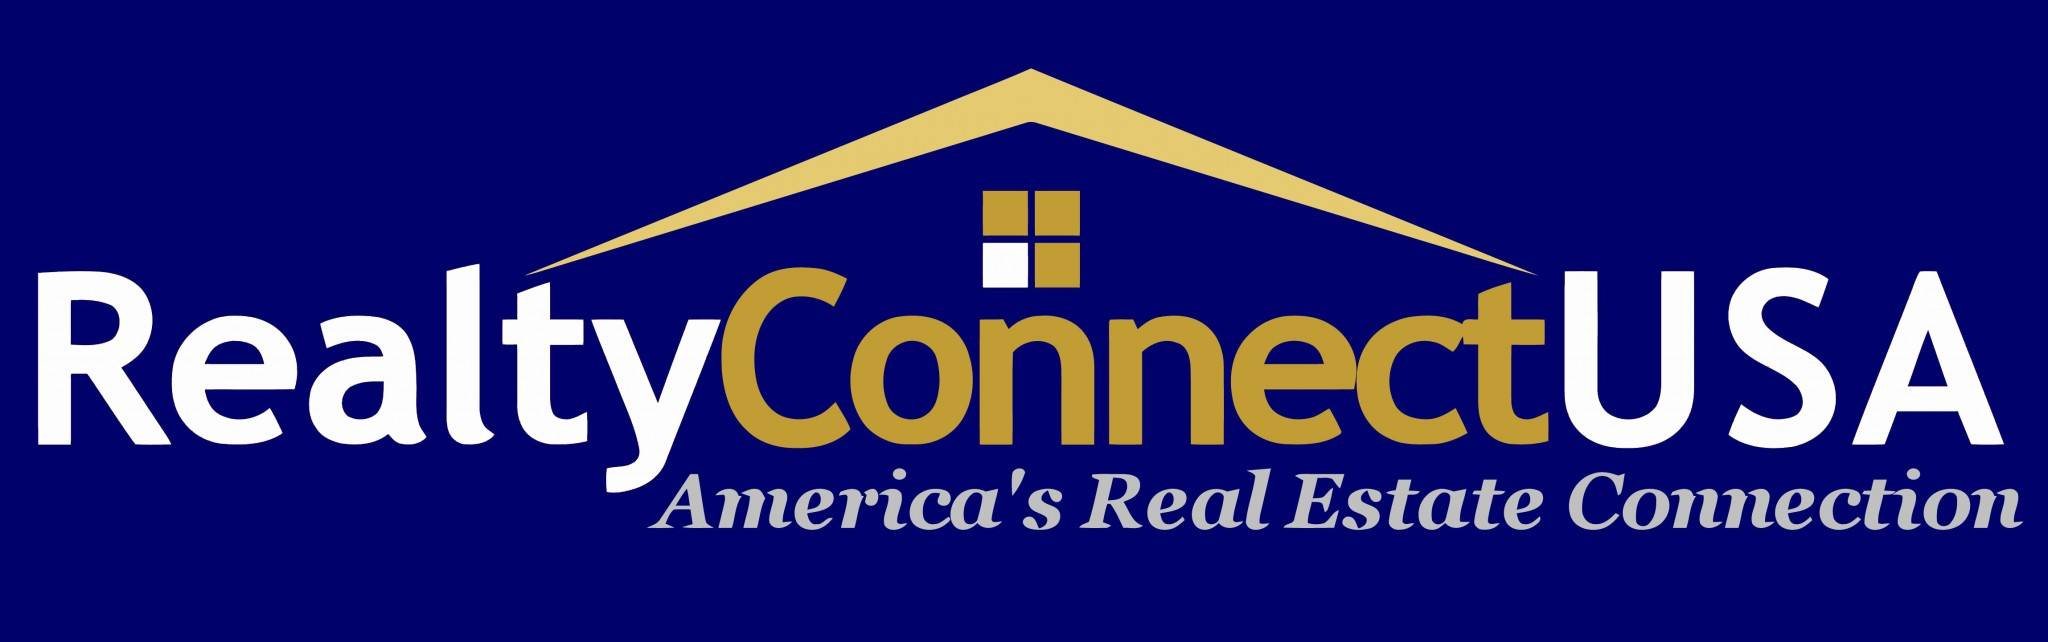 7e4744776f Homes for sale in Commack - Colleen Fox - Realty Connect USA